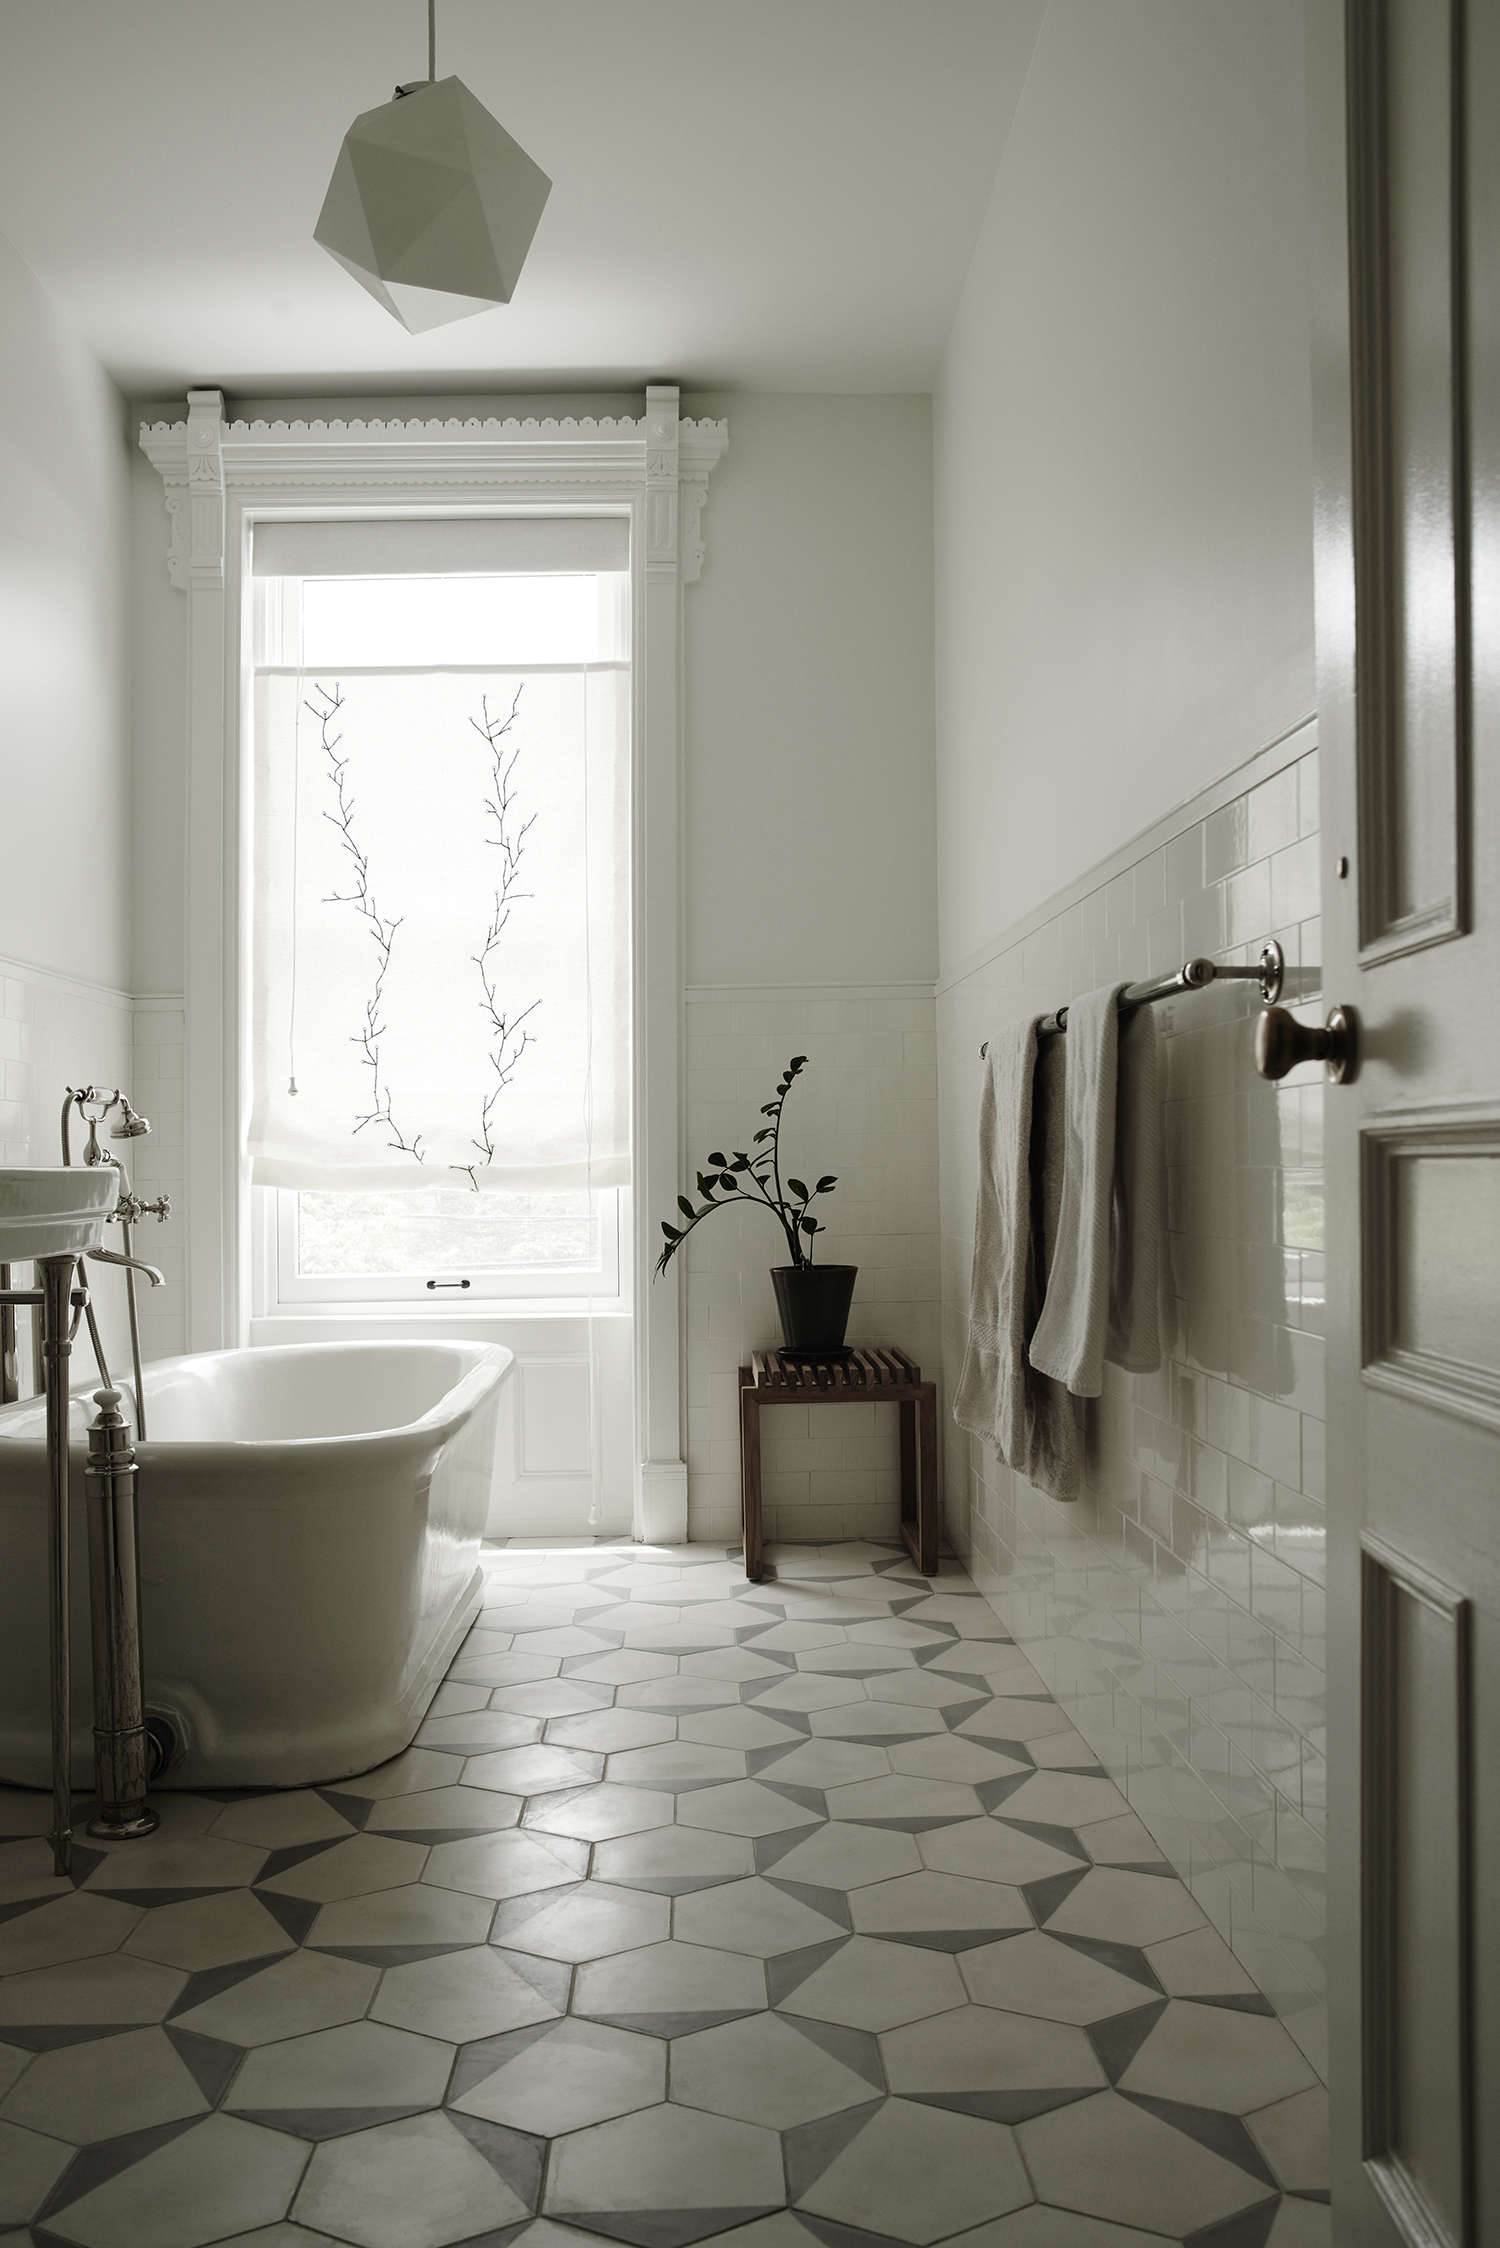 Best Above Claesson Koivisto Rune udesigned Casa Series cement tiles from Marrakech Design pattern a guest bath which like all the house us baths